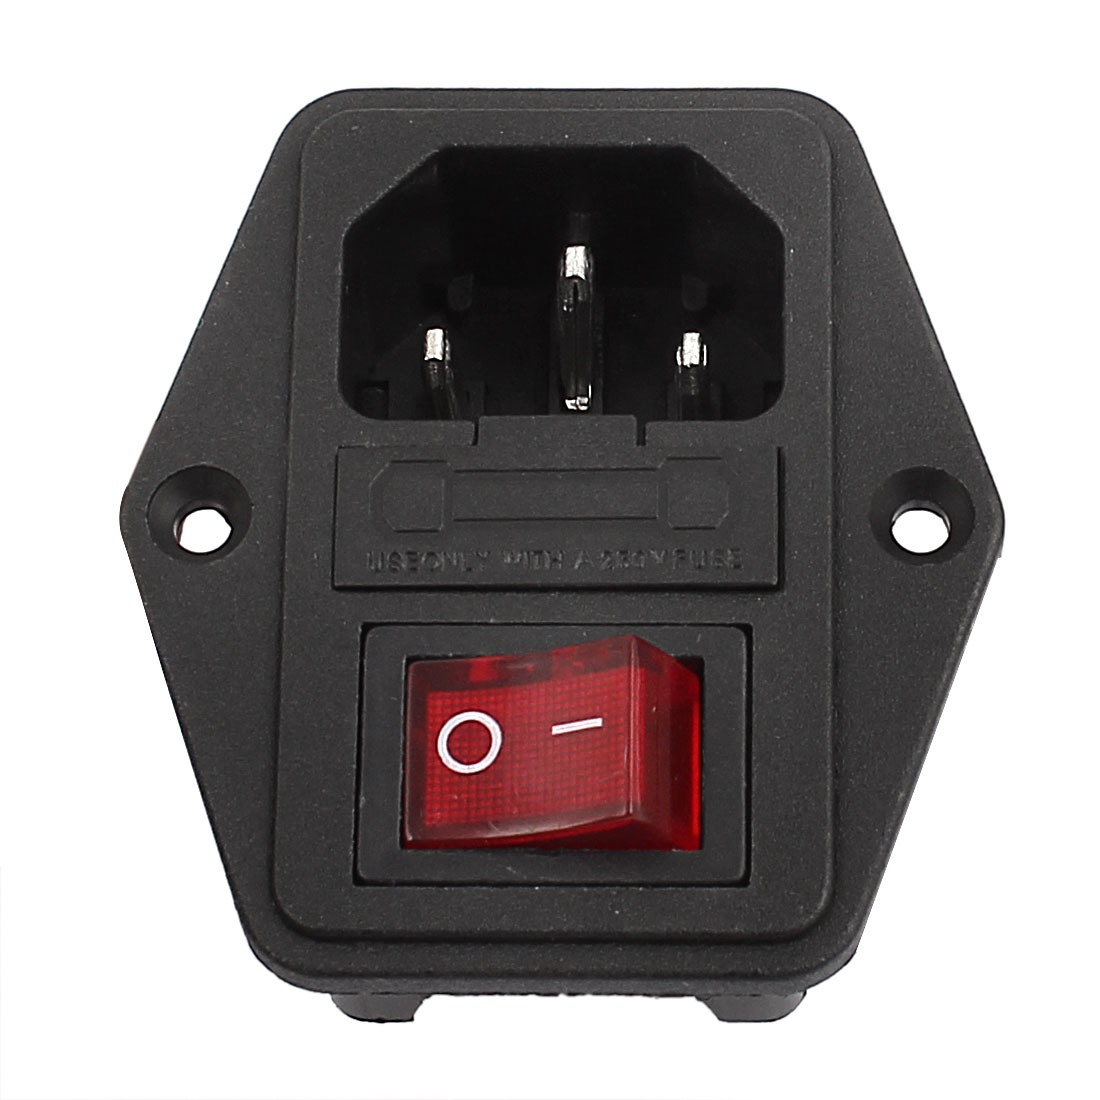 ss-8b-3 Inlet Male Power Socket with Fuse Holder & Red On/Off Switch 250V 10A